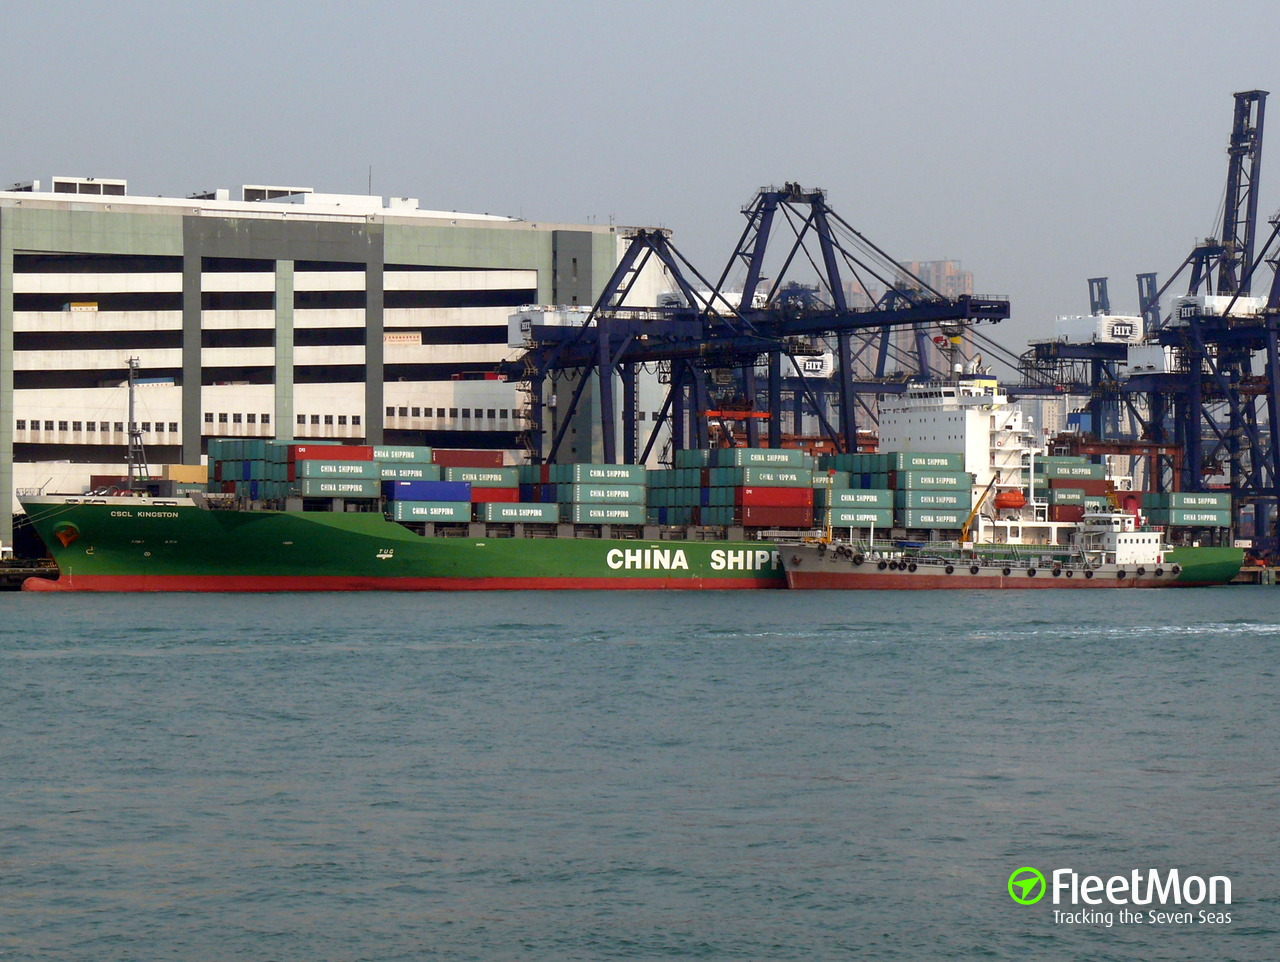 Vessel CSCL KINGSTON